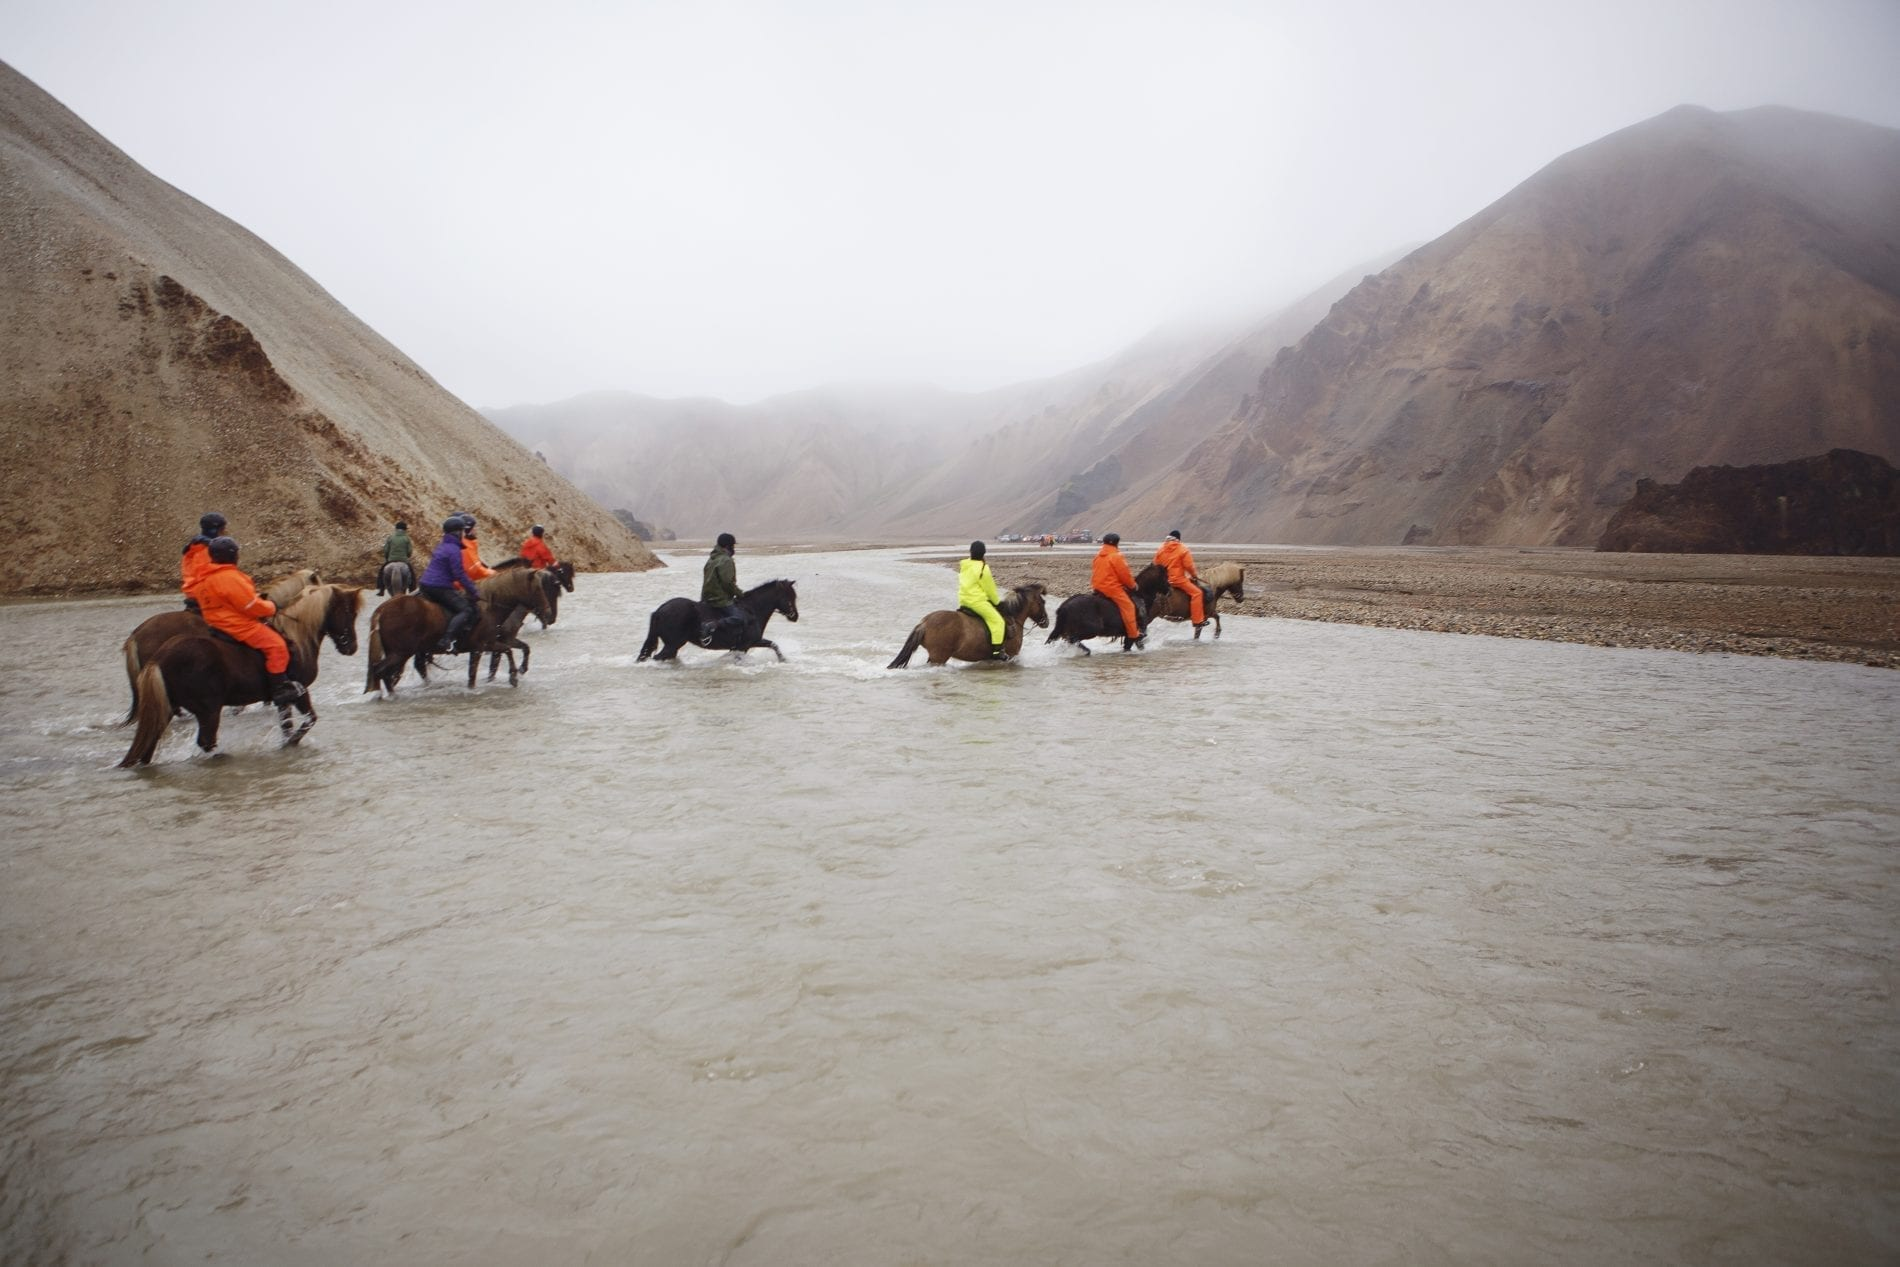 Crossing a river horse riding during sheep round up